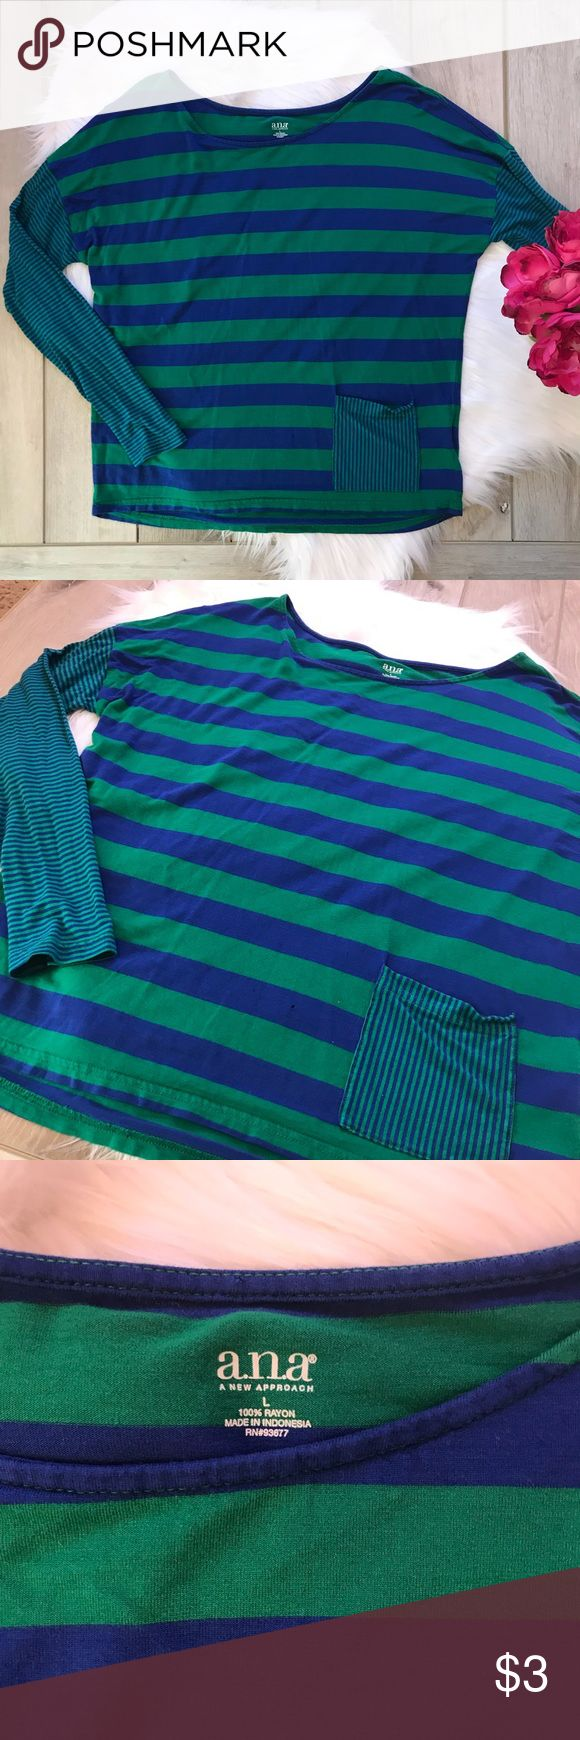 FREE {•Striped T-Shirt•} Adorable Kelly green and cobalt blue striped shirt. Long sleeves. Has a slouchy loose fit. Small pocket on the front. Free with any purchase. Hanger caught the top in my closet and left two tiny holes in the top! I have worn this and washed it several times since that happened and holes have not gotten bigger- noted in photos. Want this? Just purchase something from my closet and message me that you want this and I'll toss it in for free! a.n.a Tops Tees - Long…